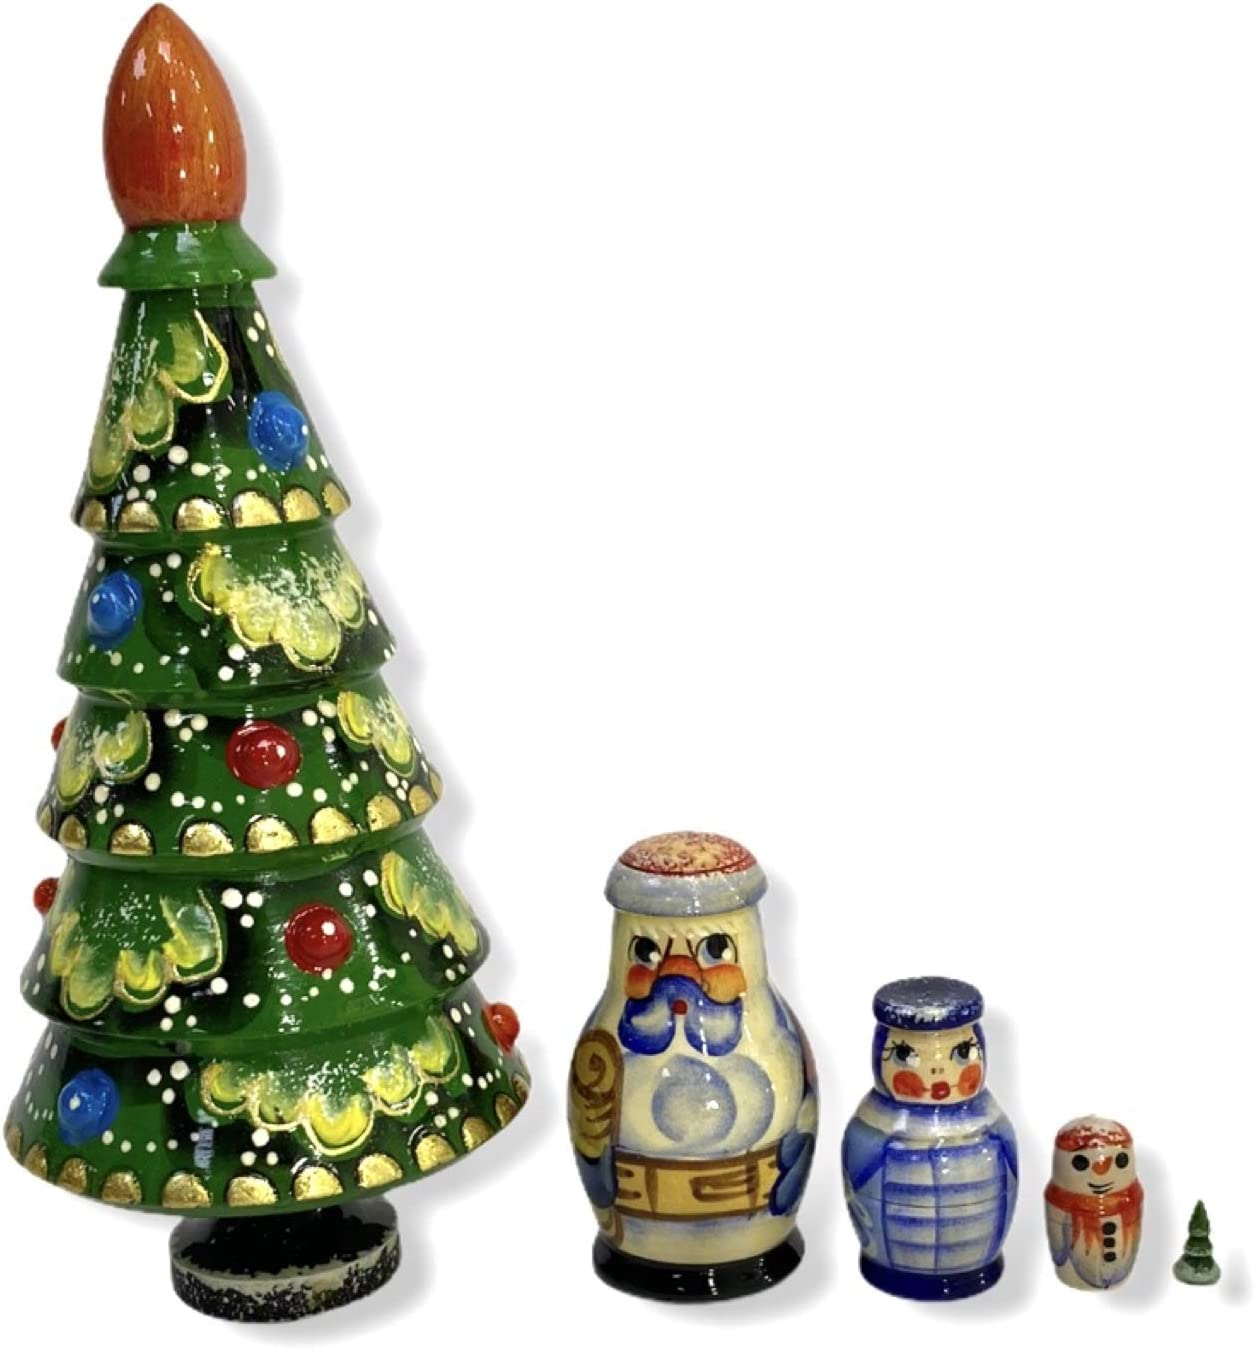 Nesting Doll Christmas Set - Christmas Tree, Russian Santa Claus, Snow Maiden, Snowman and a Small Christmas Tree. It is Carved from Wood and Painted by Russian Craftsmen.Handmade in Russia.